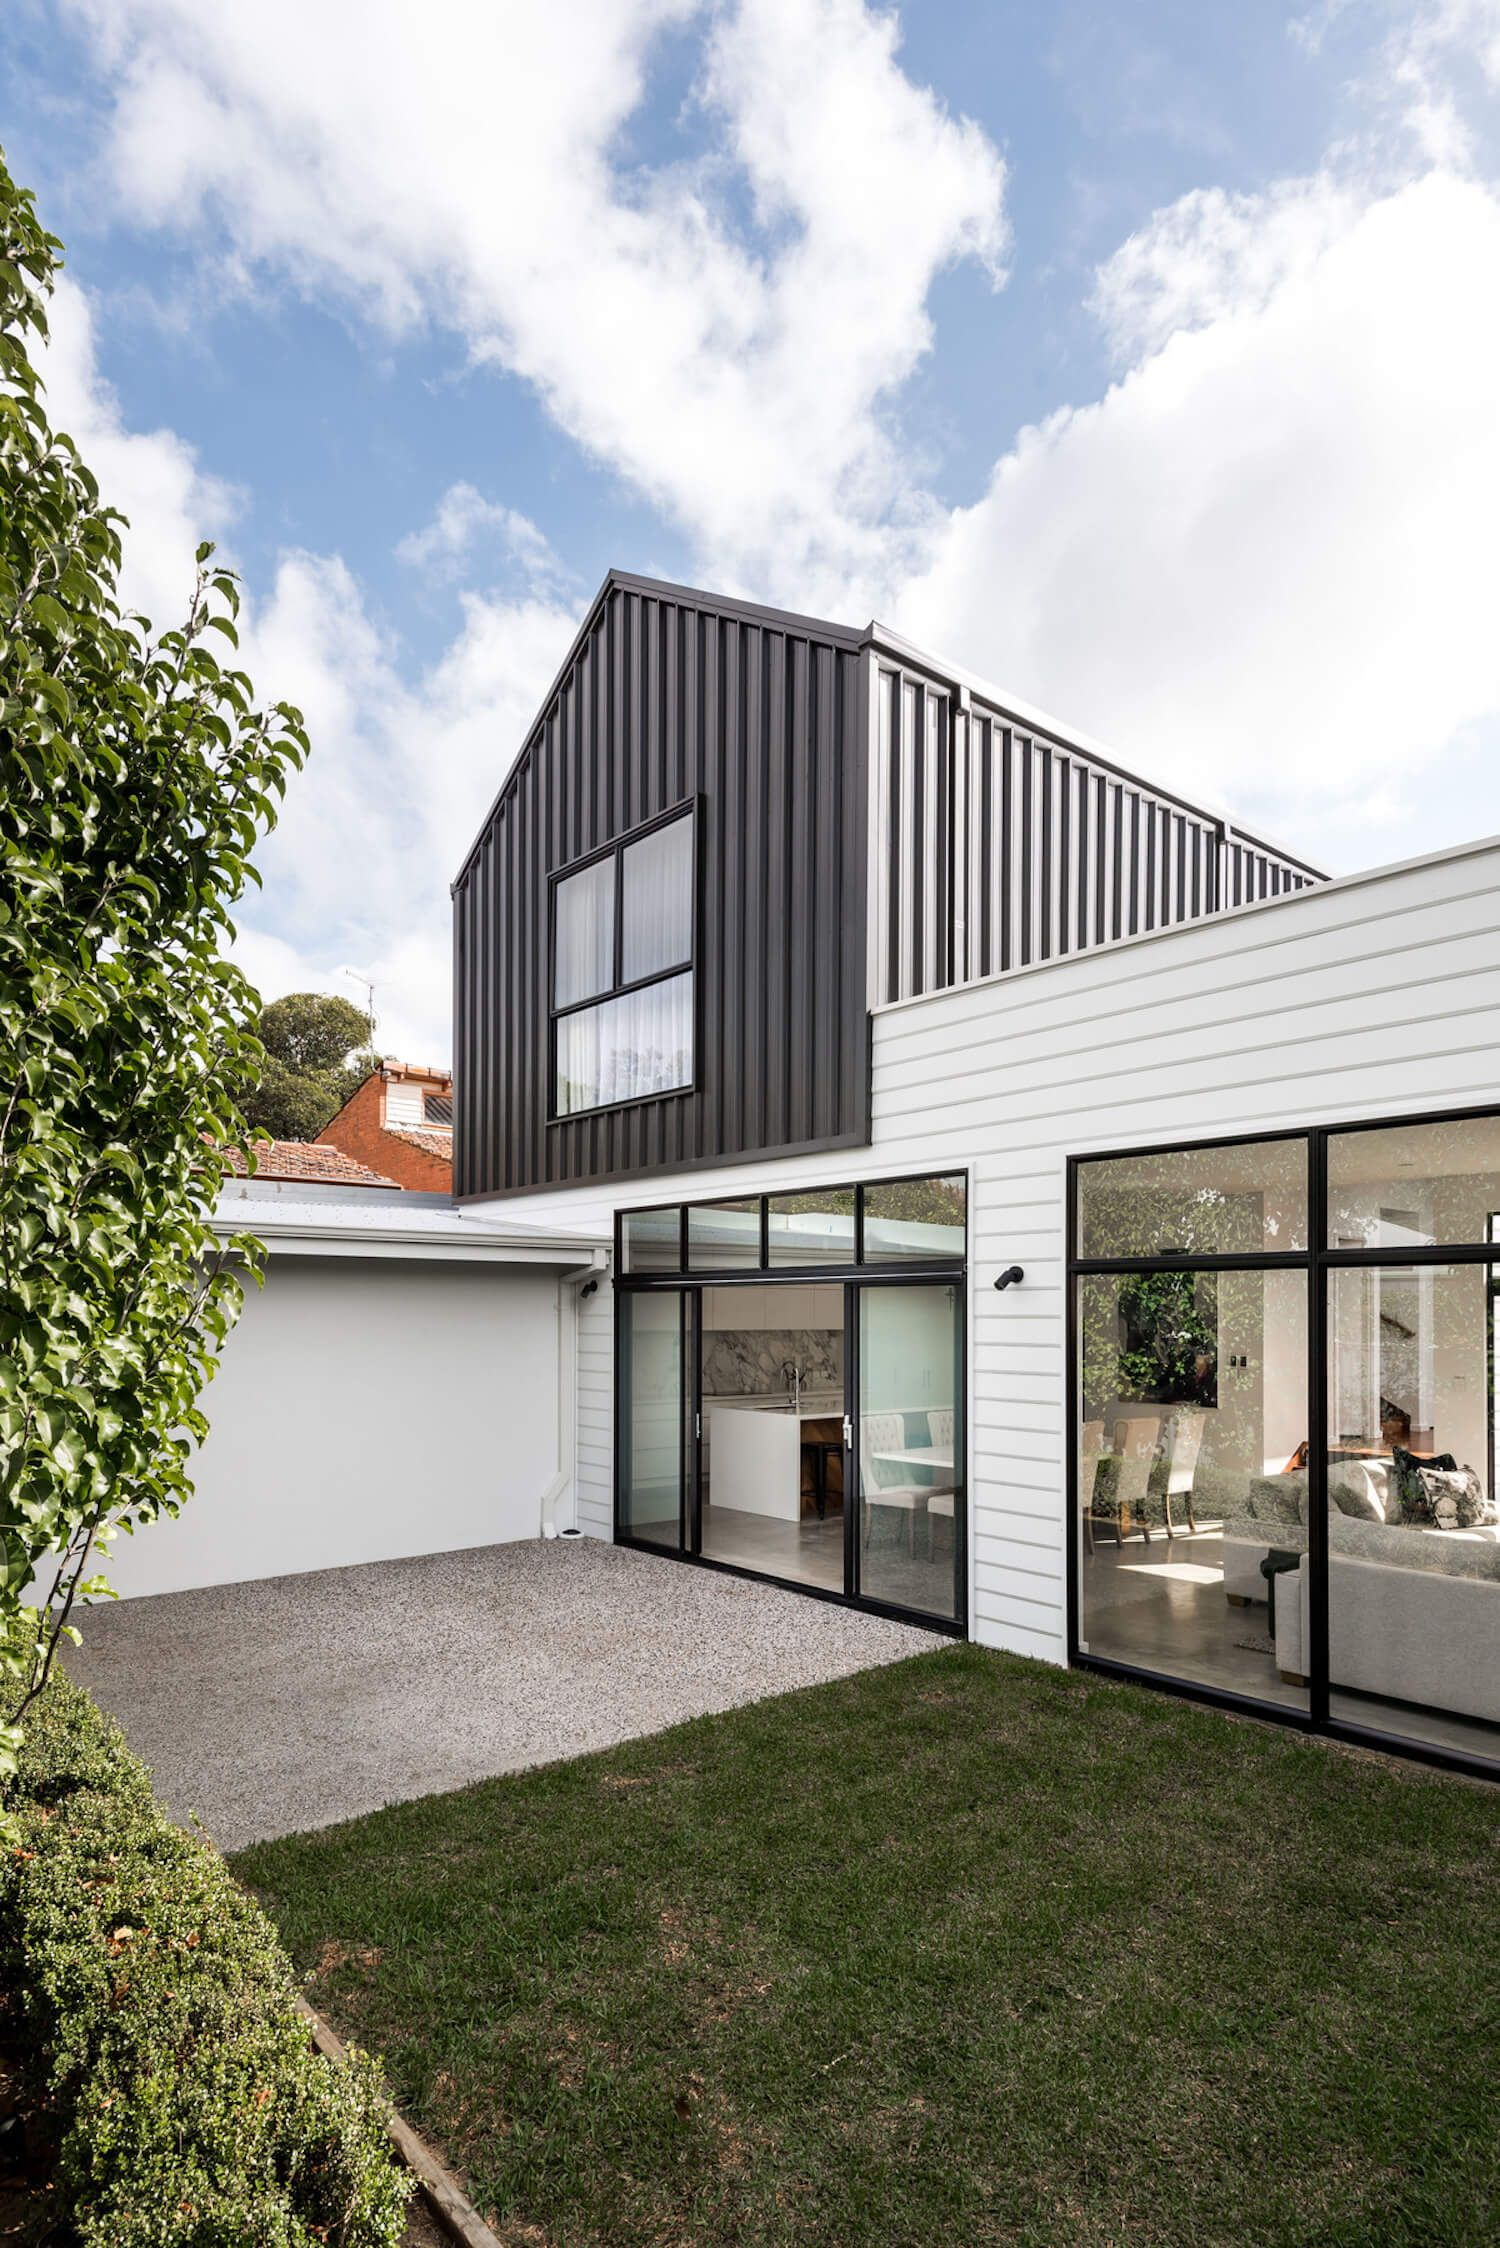 The pinterest house by sandy anghie architect exteriors - Modern weatherboard home designs ...